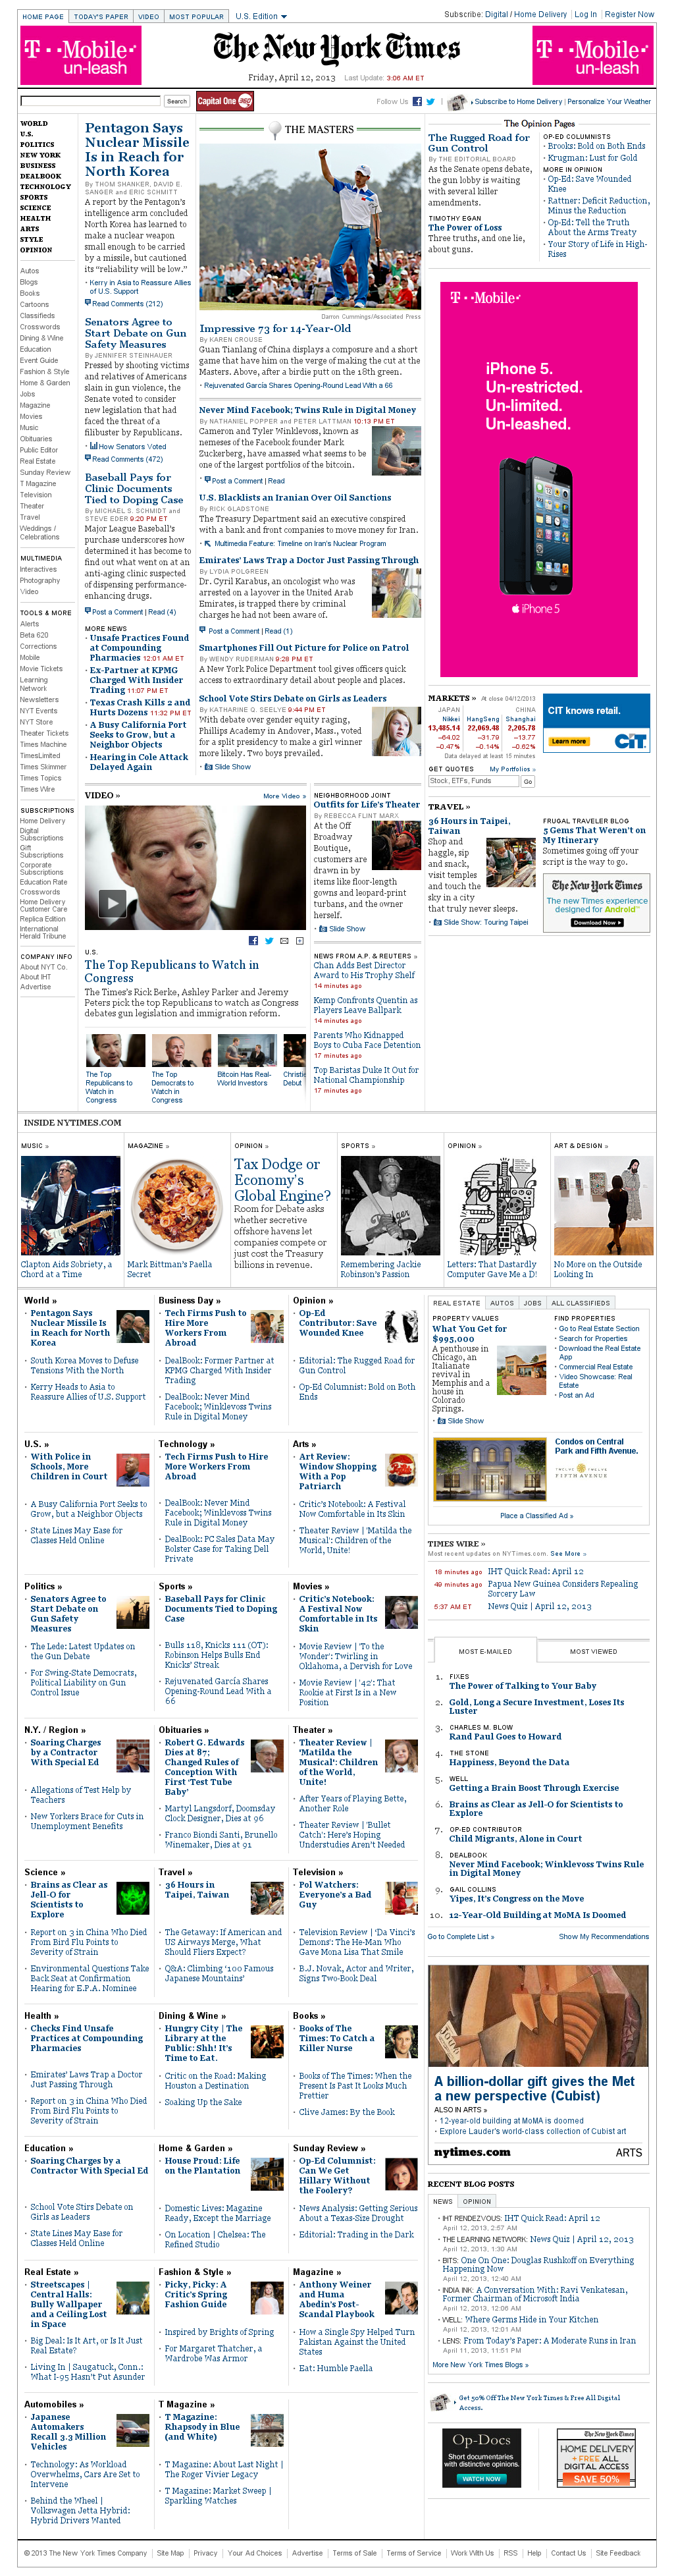 The New York Times at Friday April 12, 2013, 7:19 a.m. UTC